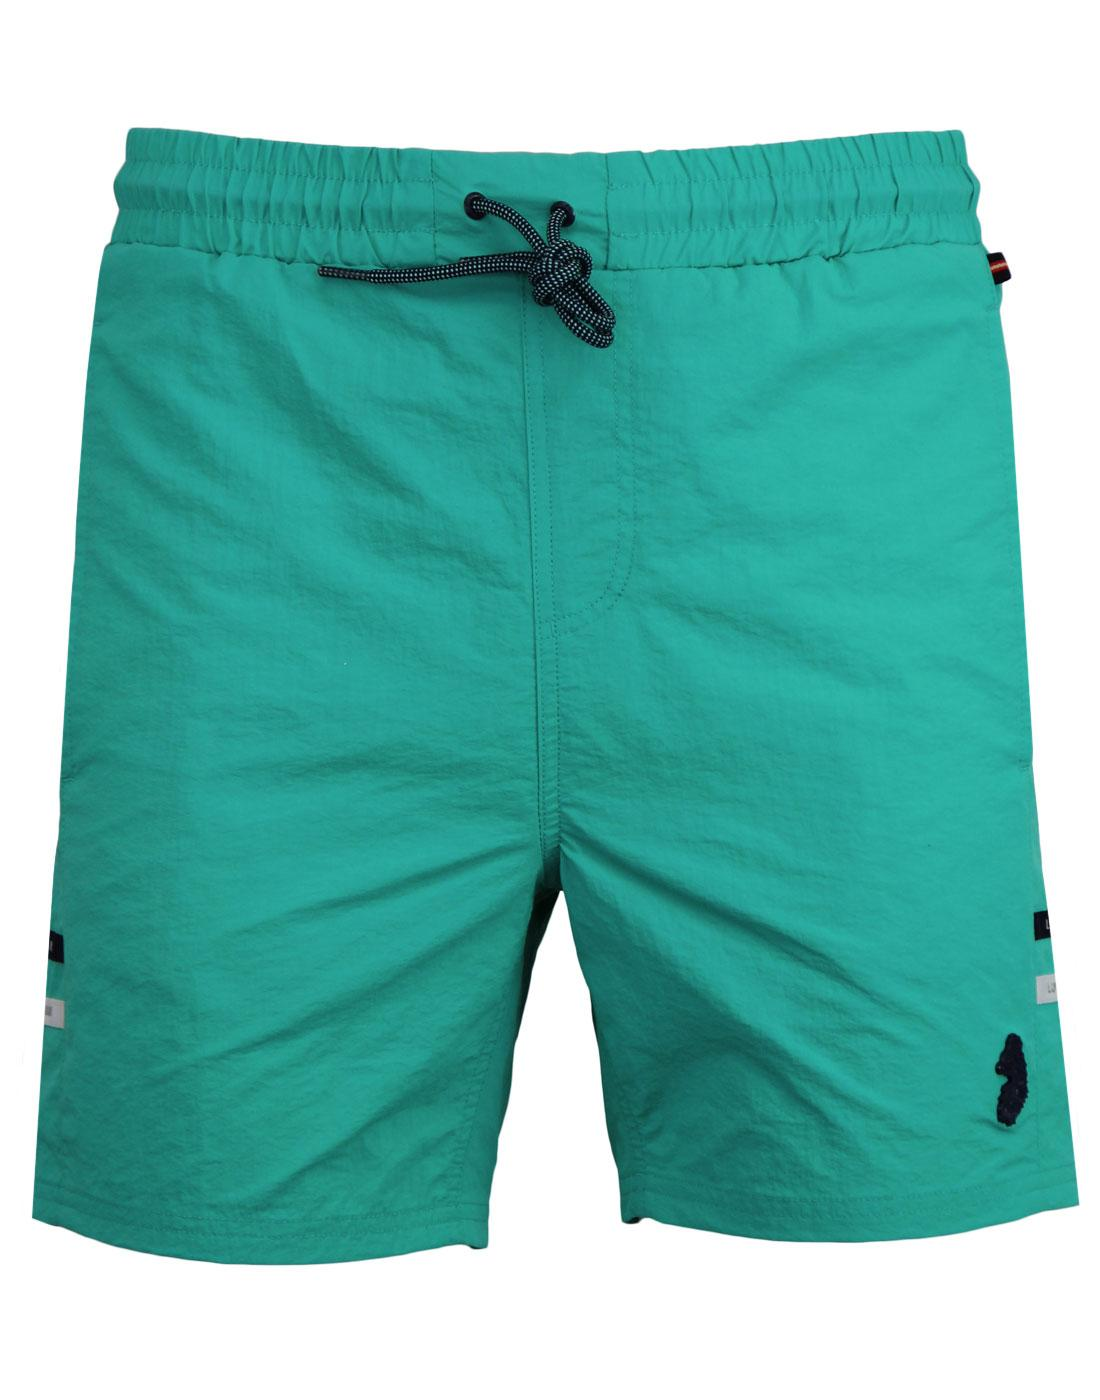 Ragy LUKE 1977 Mens Indie Summer Swim Shorts GREEN